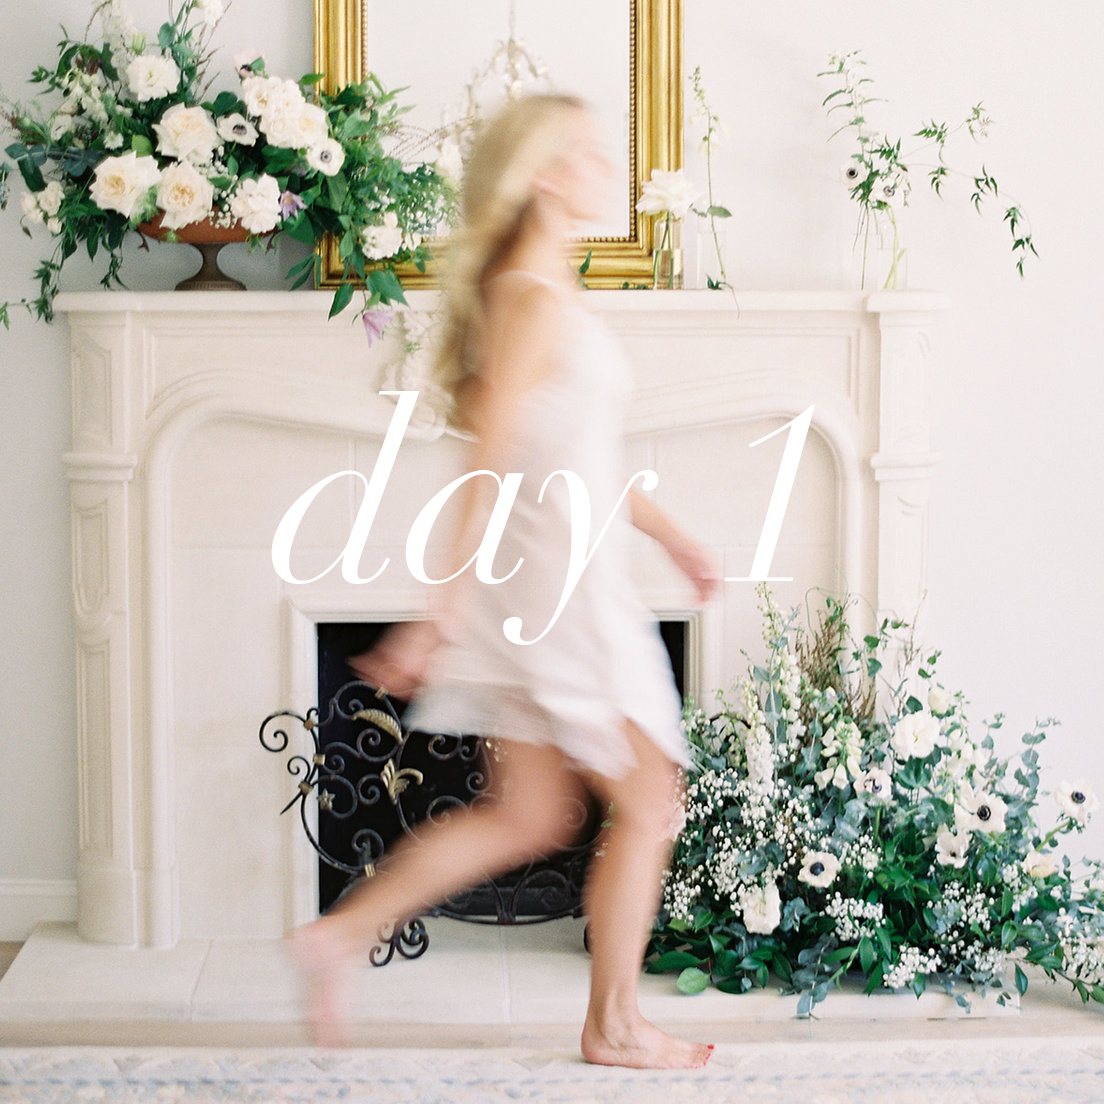 isari-flower-studio-floral-masterclass-san-diego-day-1.png